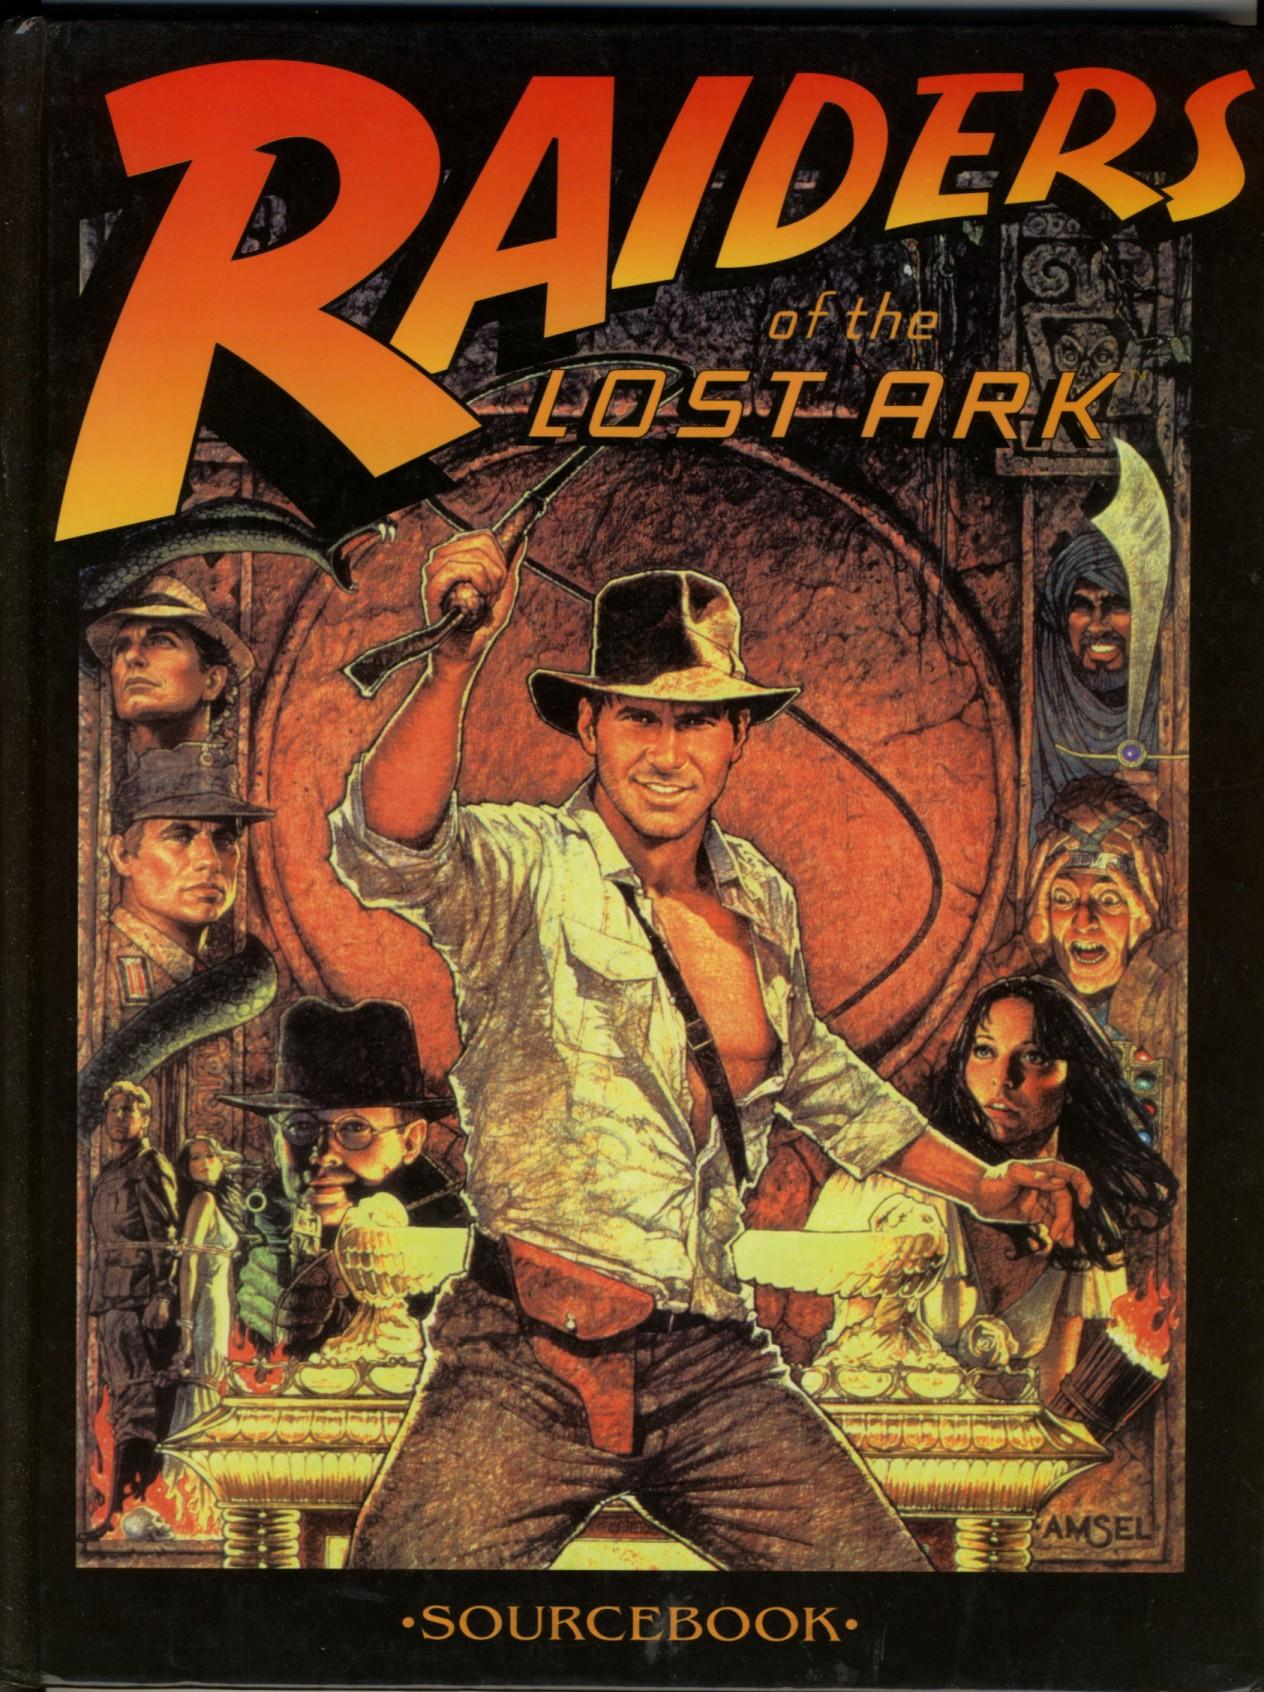 1981: Raiders of the Lost Ark – The Literary and Cinematic Time Machine